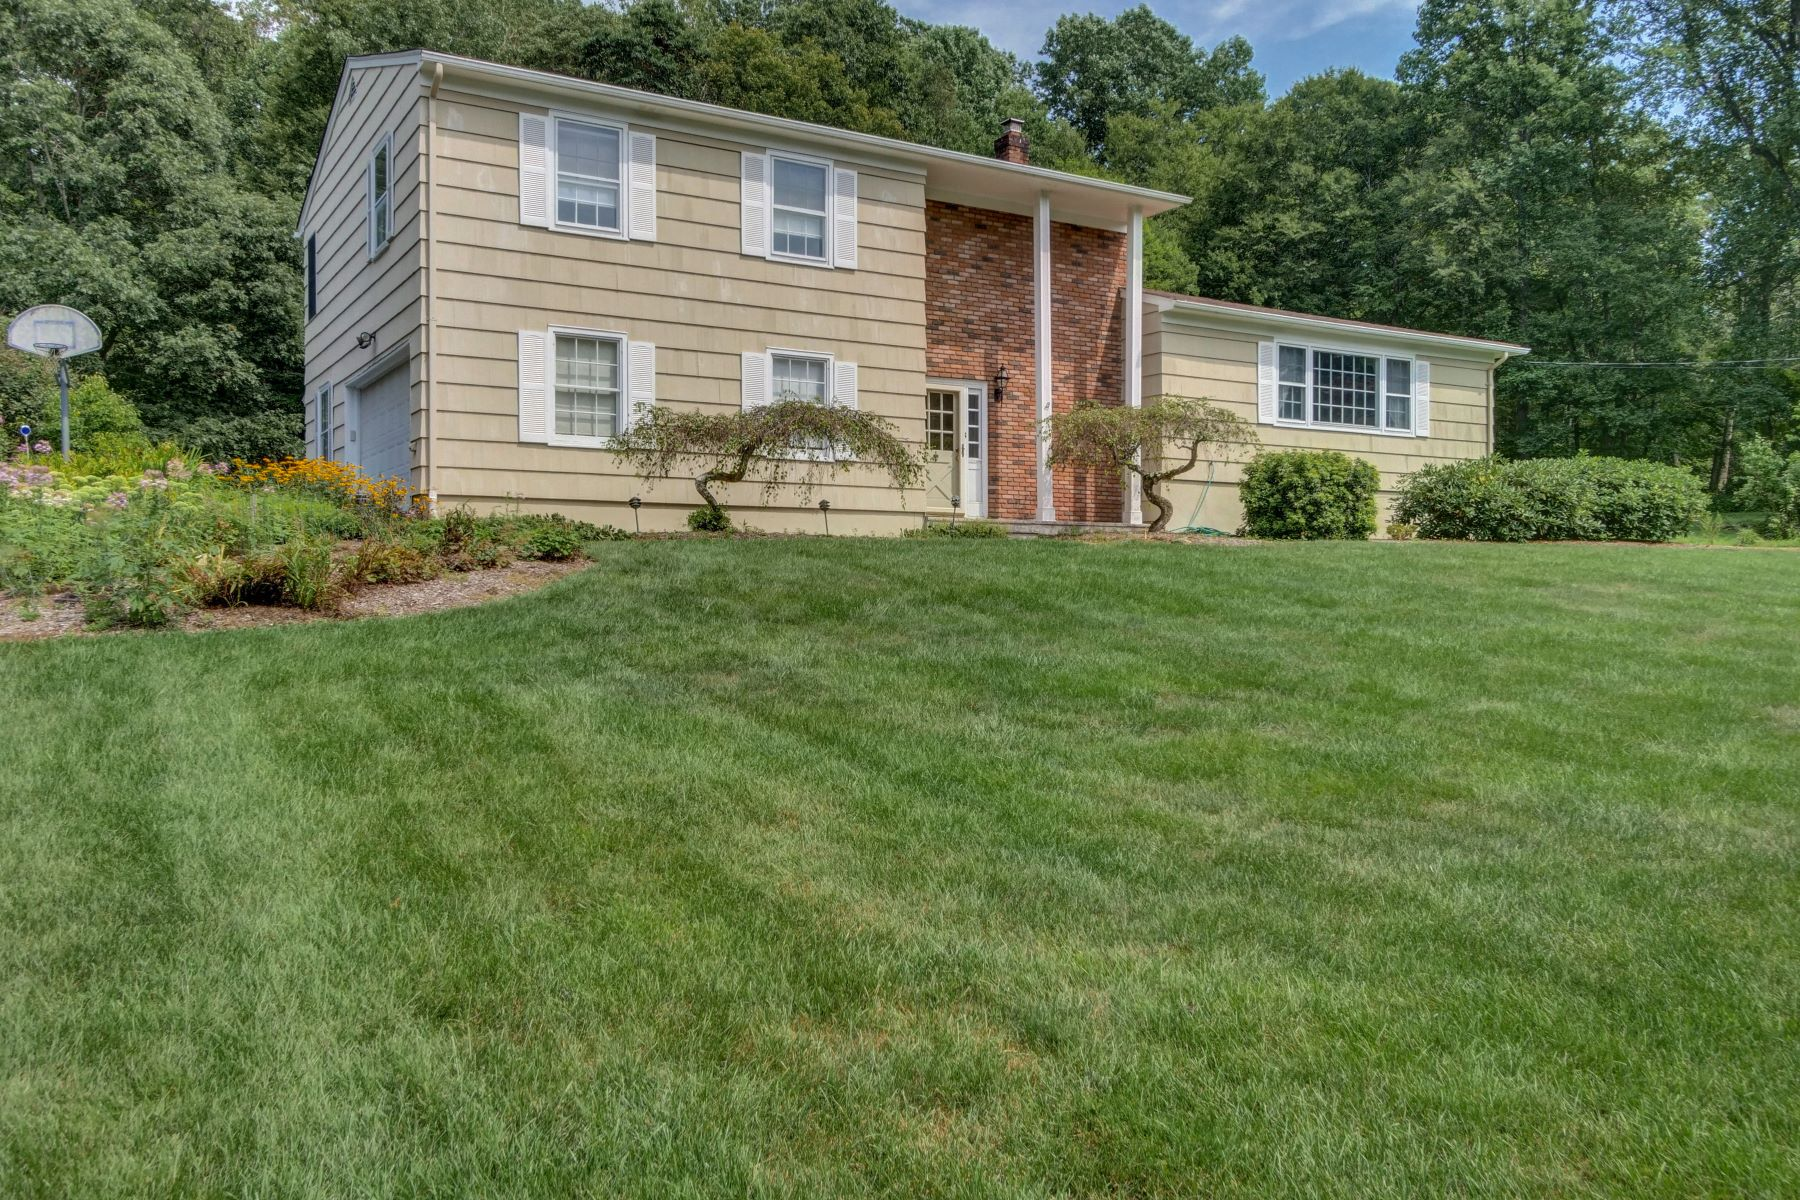 Single Family Homes for Sale at Lovely Home 20 Linda Terrace Randolph, New Jersey 07869 United States